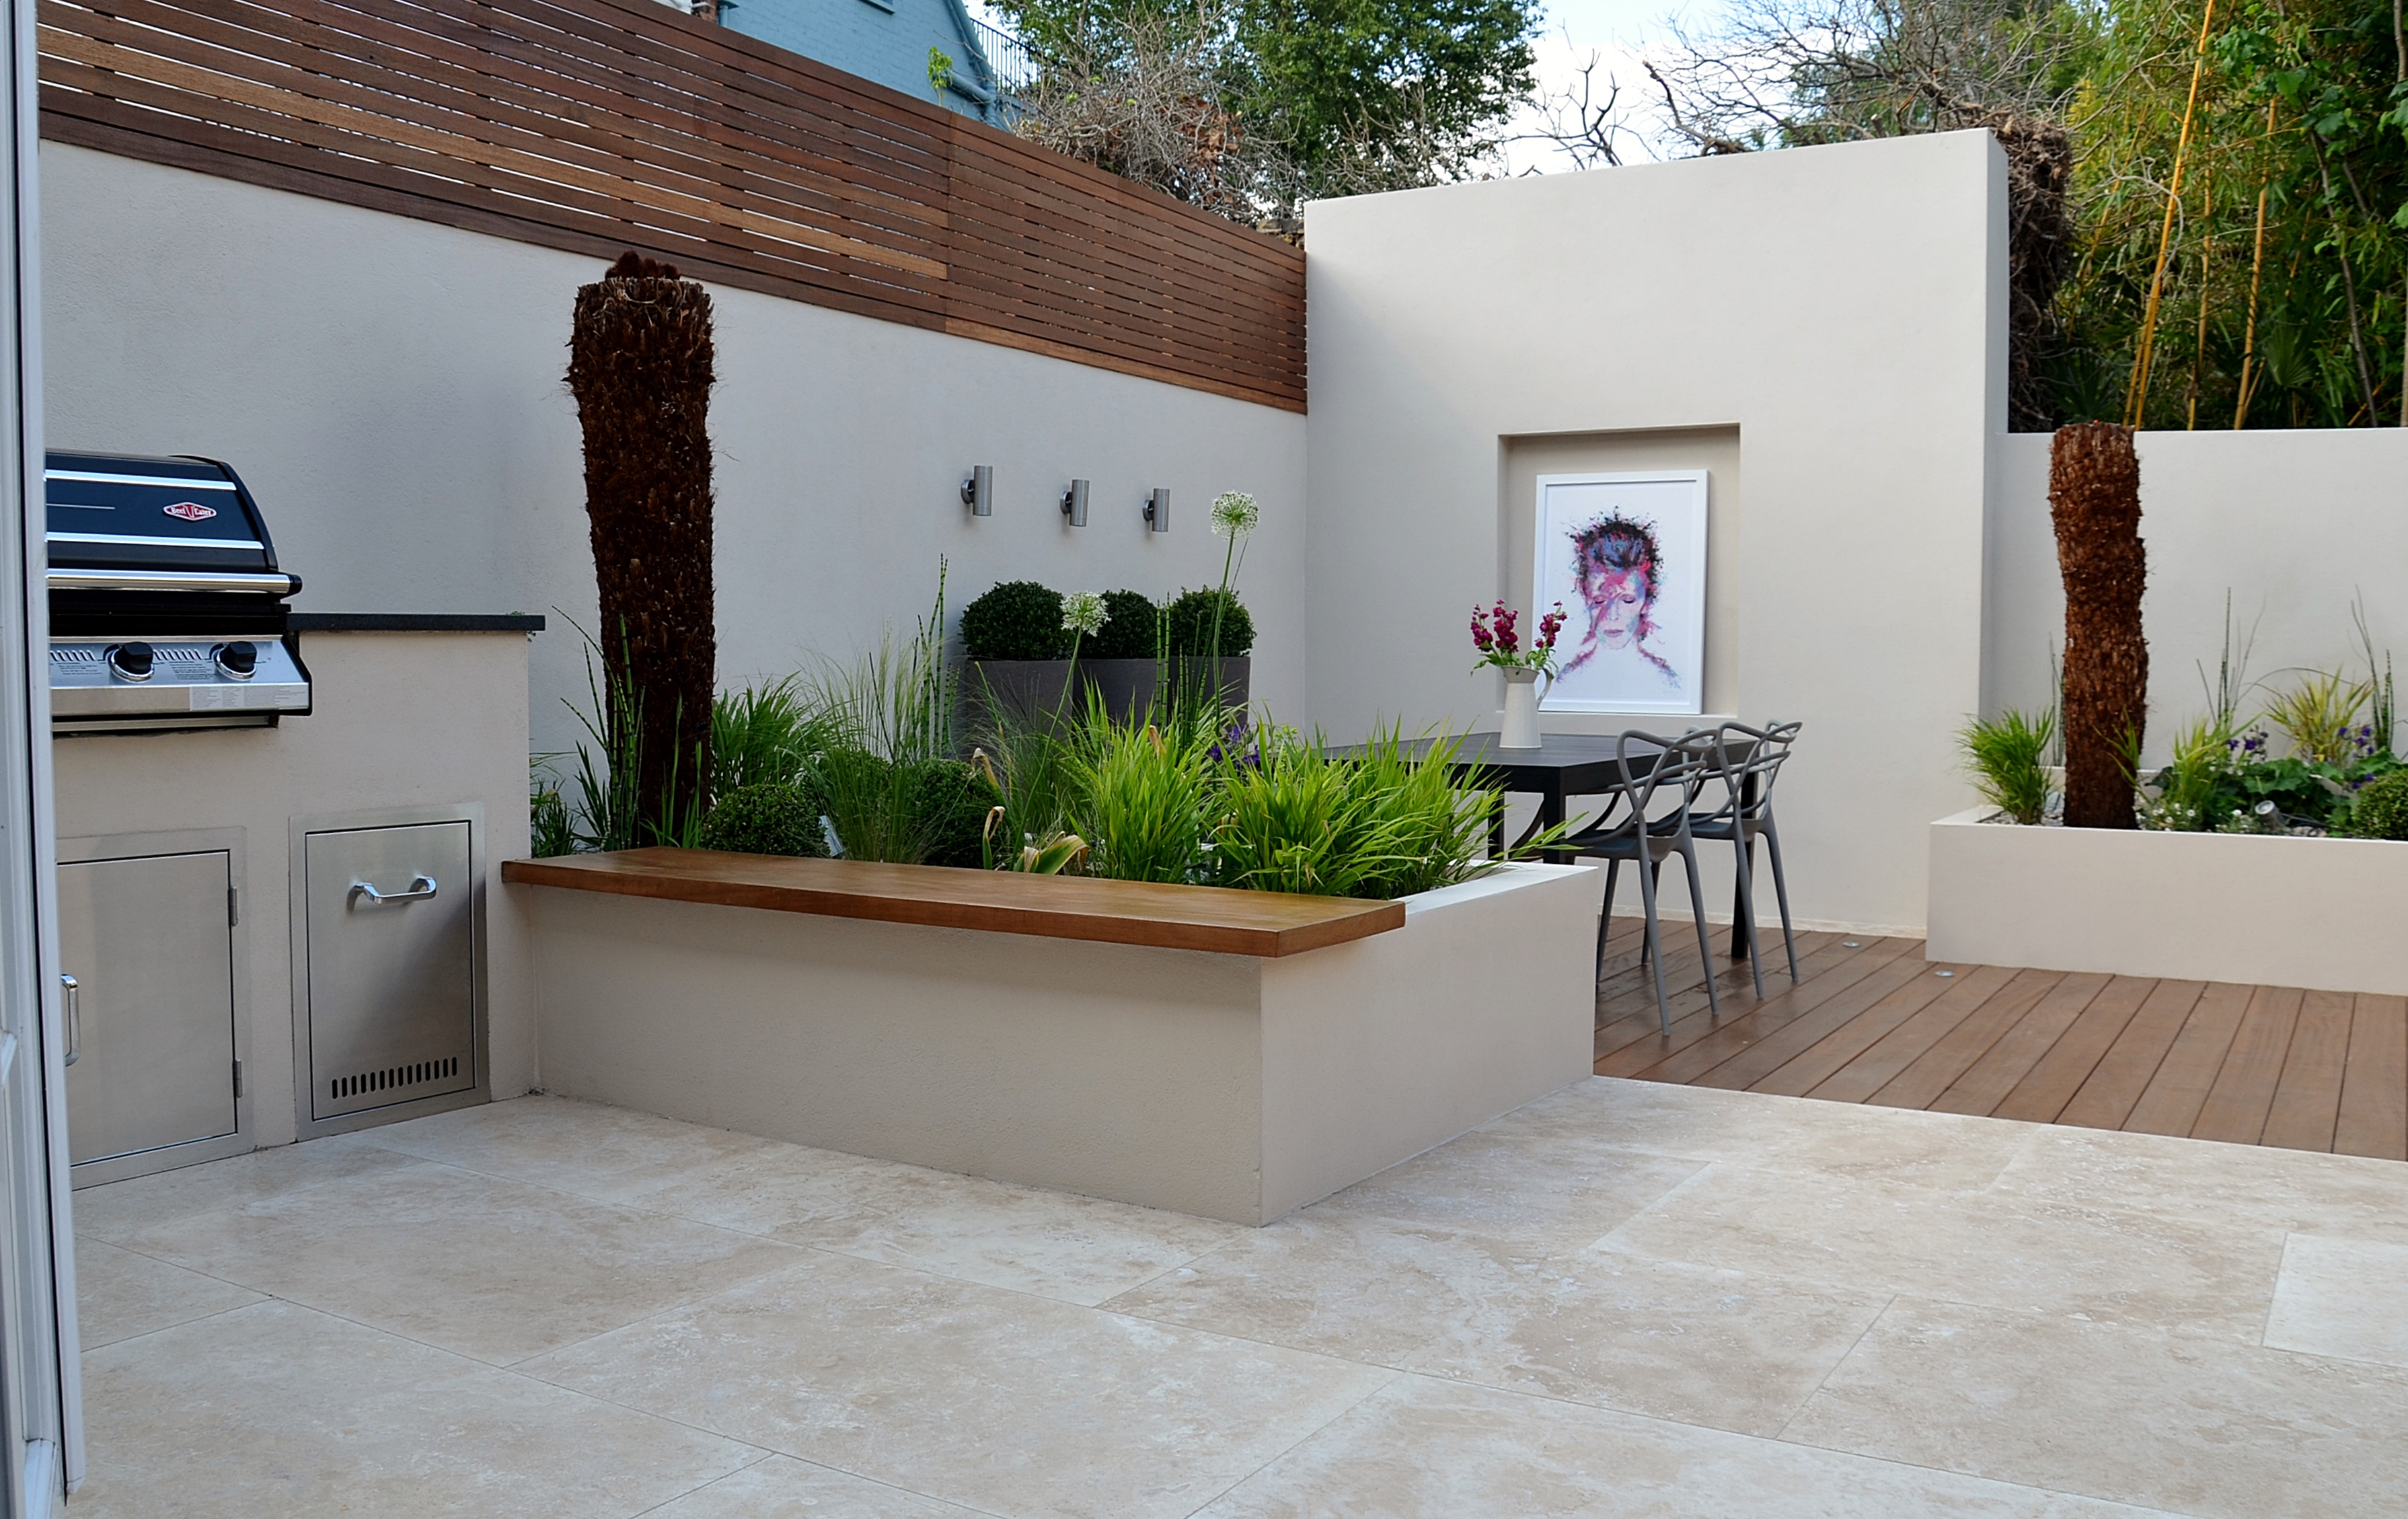 Modern Garden Design Outdoor Kitchen Room Hardwood Screen Deck Cream Paving London Designer